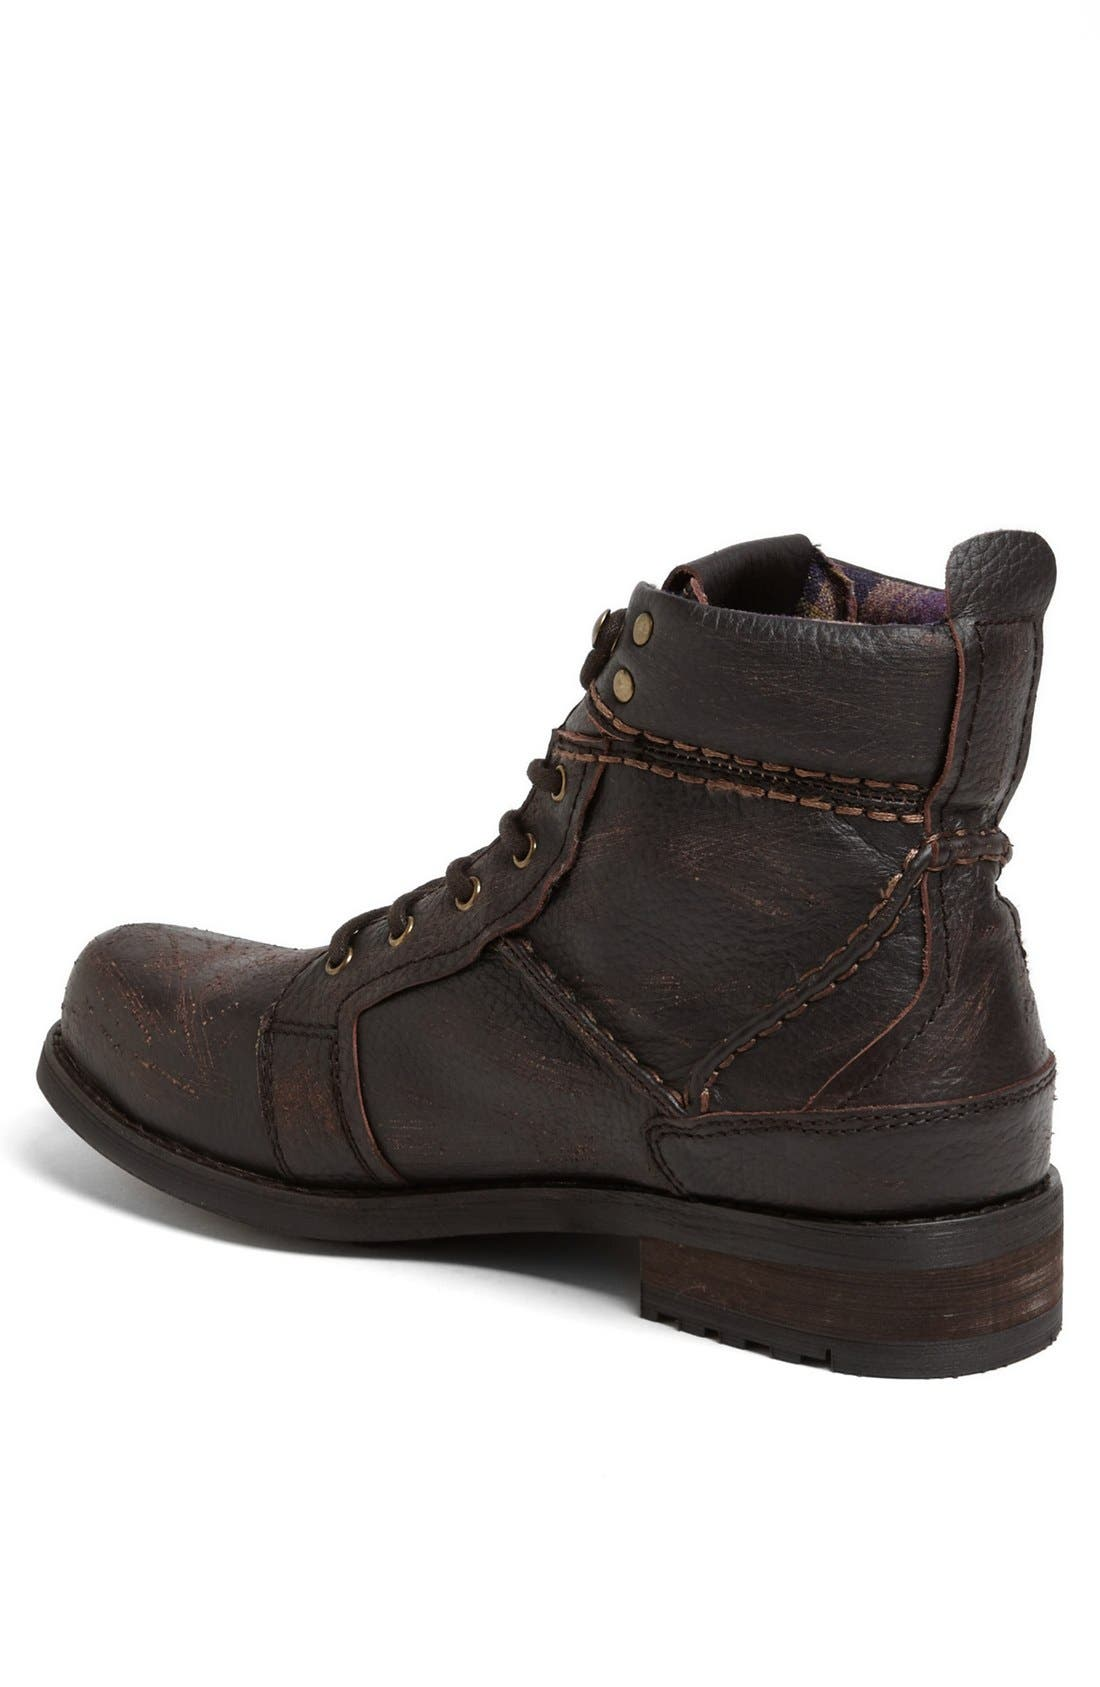 Alternate Image 2  - ZIGIny 'Catcher' Plain Toe Boot